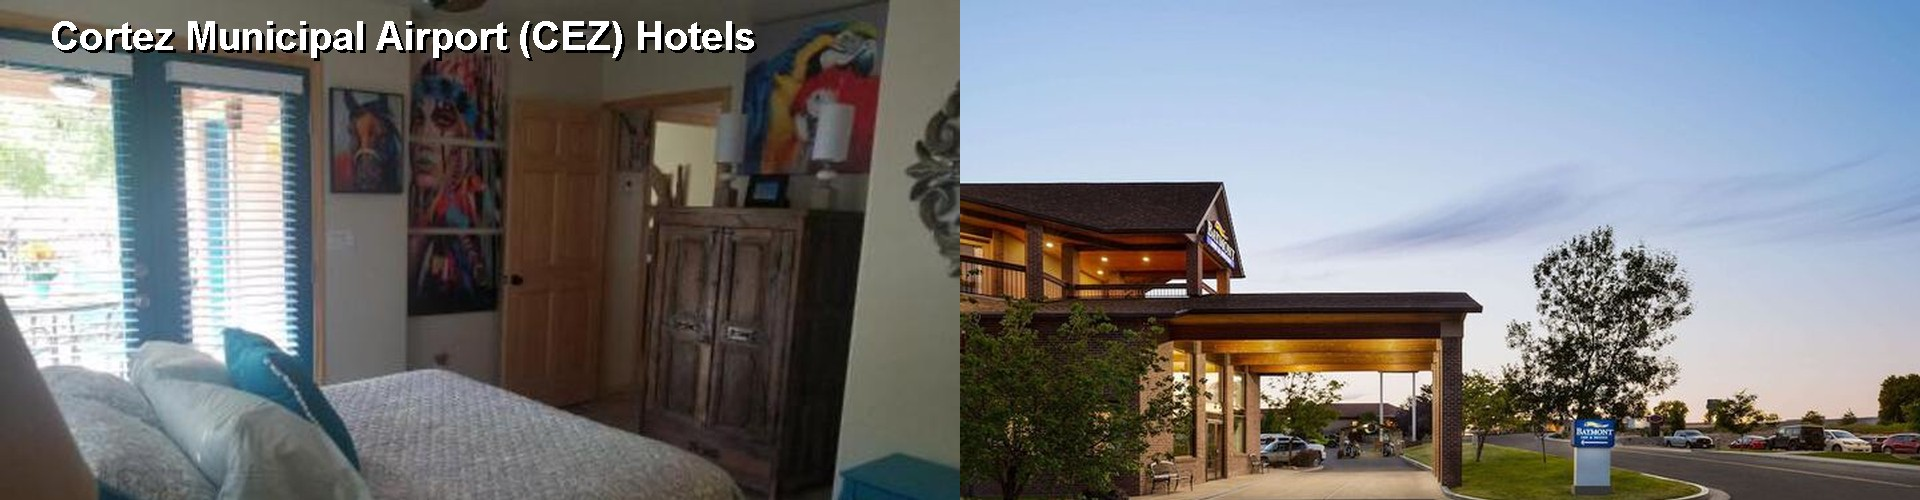 5 Best Hotels near Cortez Municipal Airport (CEZ)